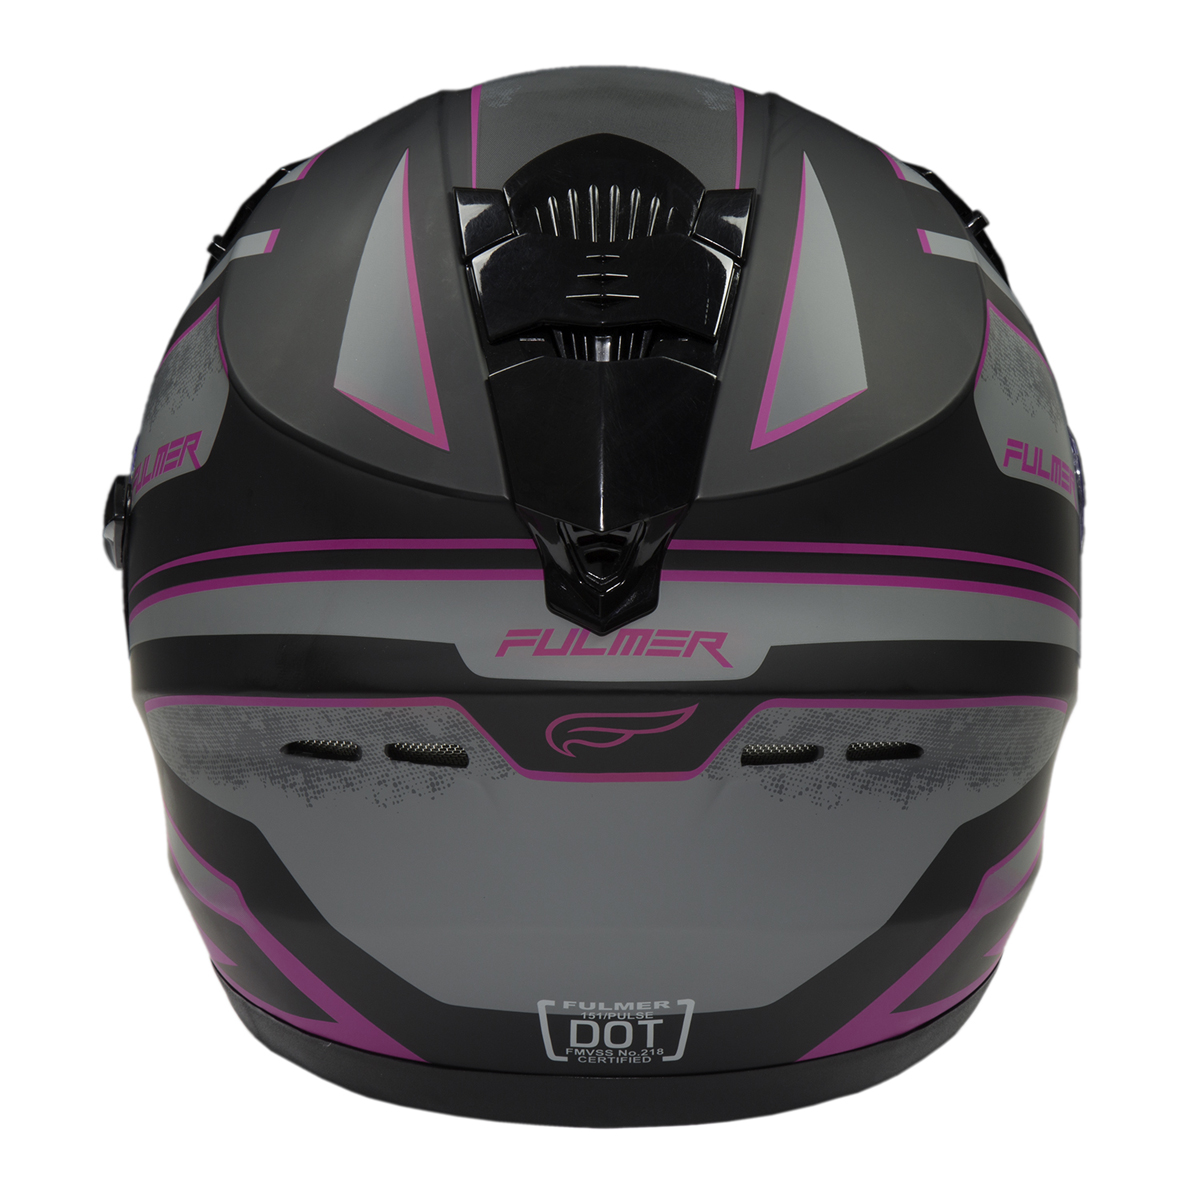 Fulmer-Adult-Full-Face-Motorcycle-Helmet-151-Pulse-DOT-Approved-Street-Bike thumbnail 27